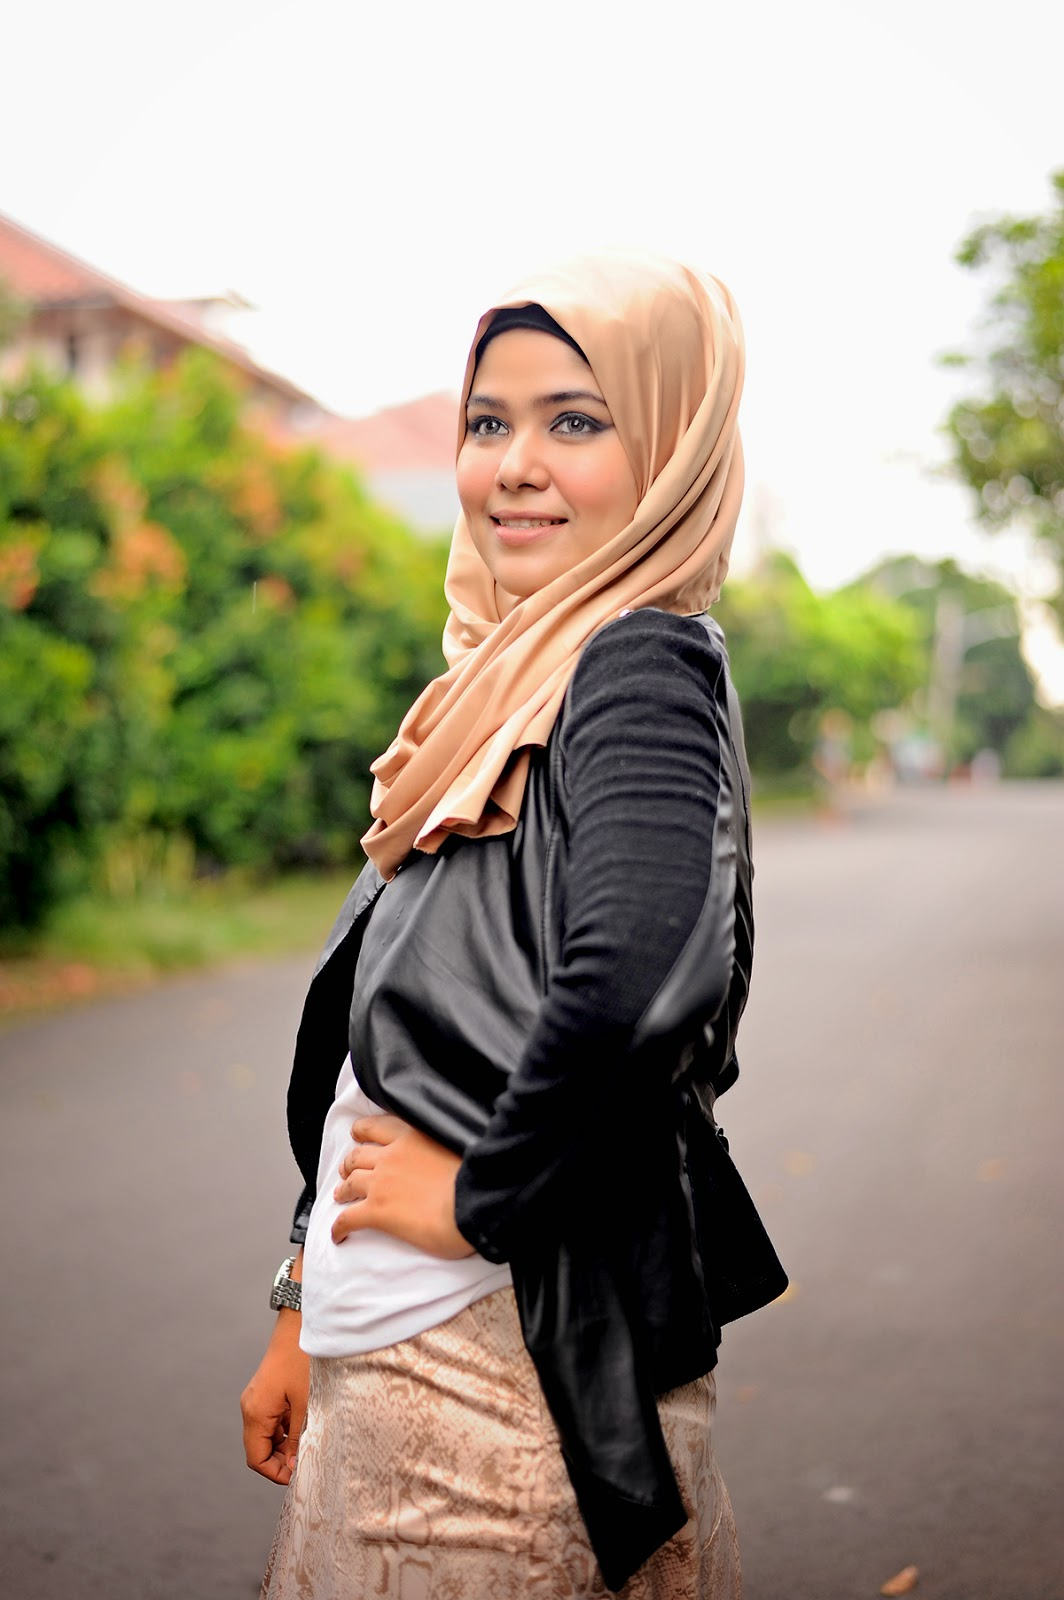 Leather jacket hijab -  Leather Jacket And White T Shirt For My Hijab Im Wearing A Soft Gold Satin Shawl From Nonizakiah Scarf Here My Look Hope You All Like It